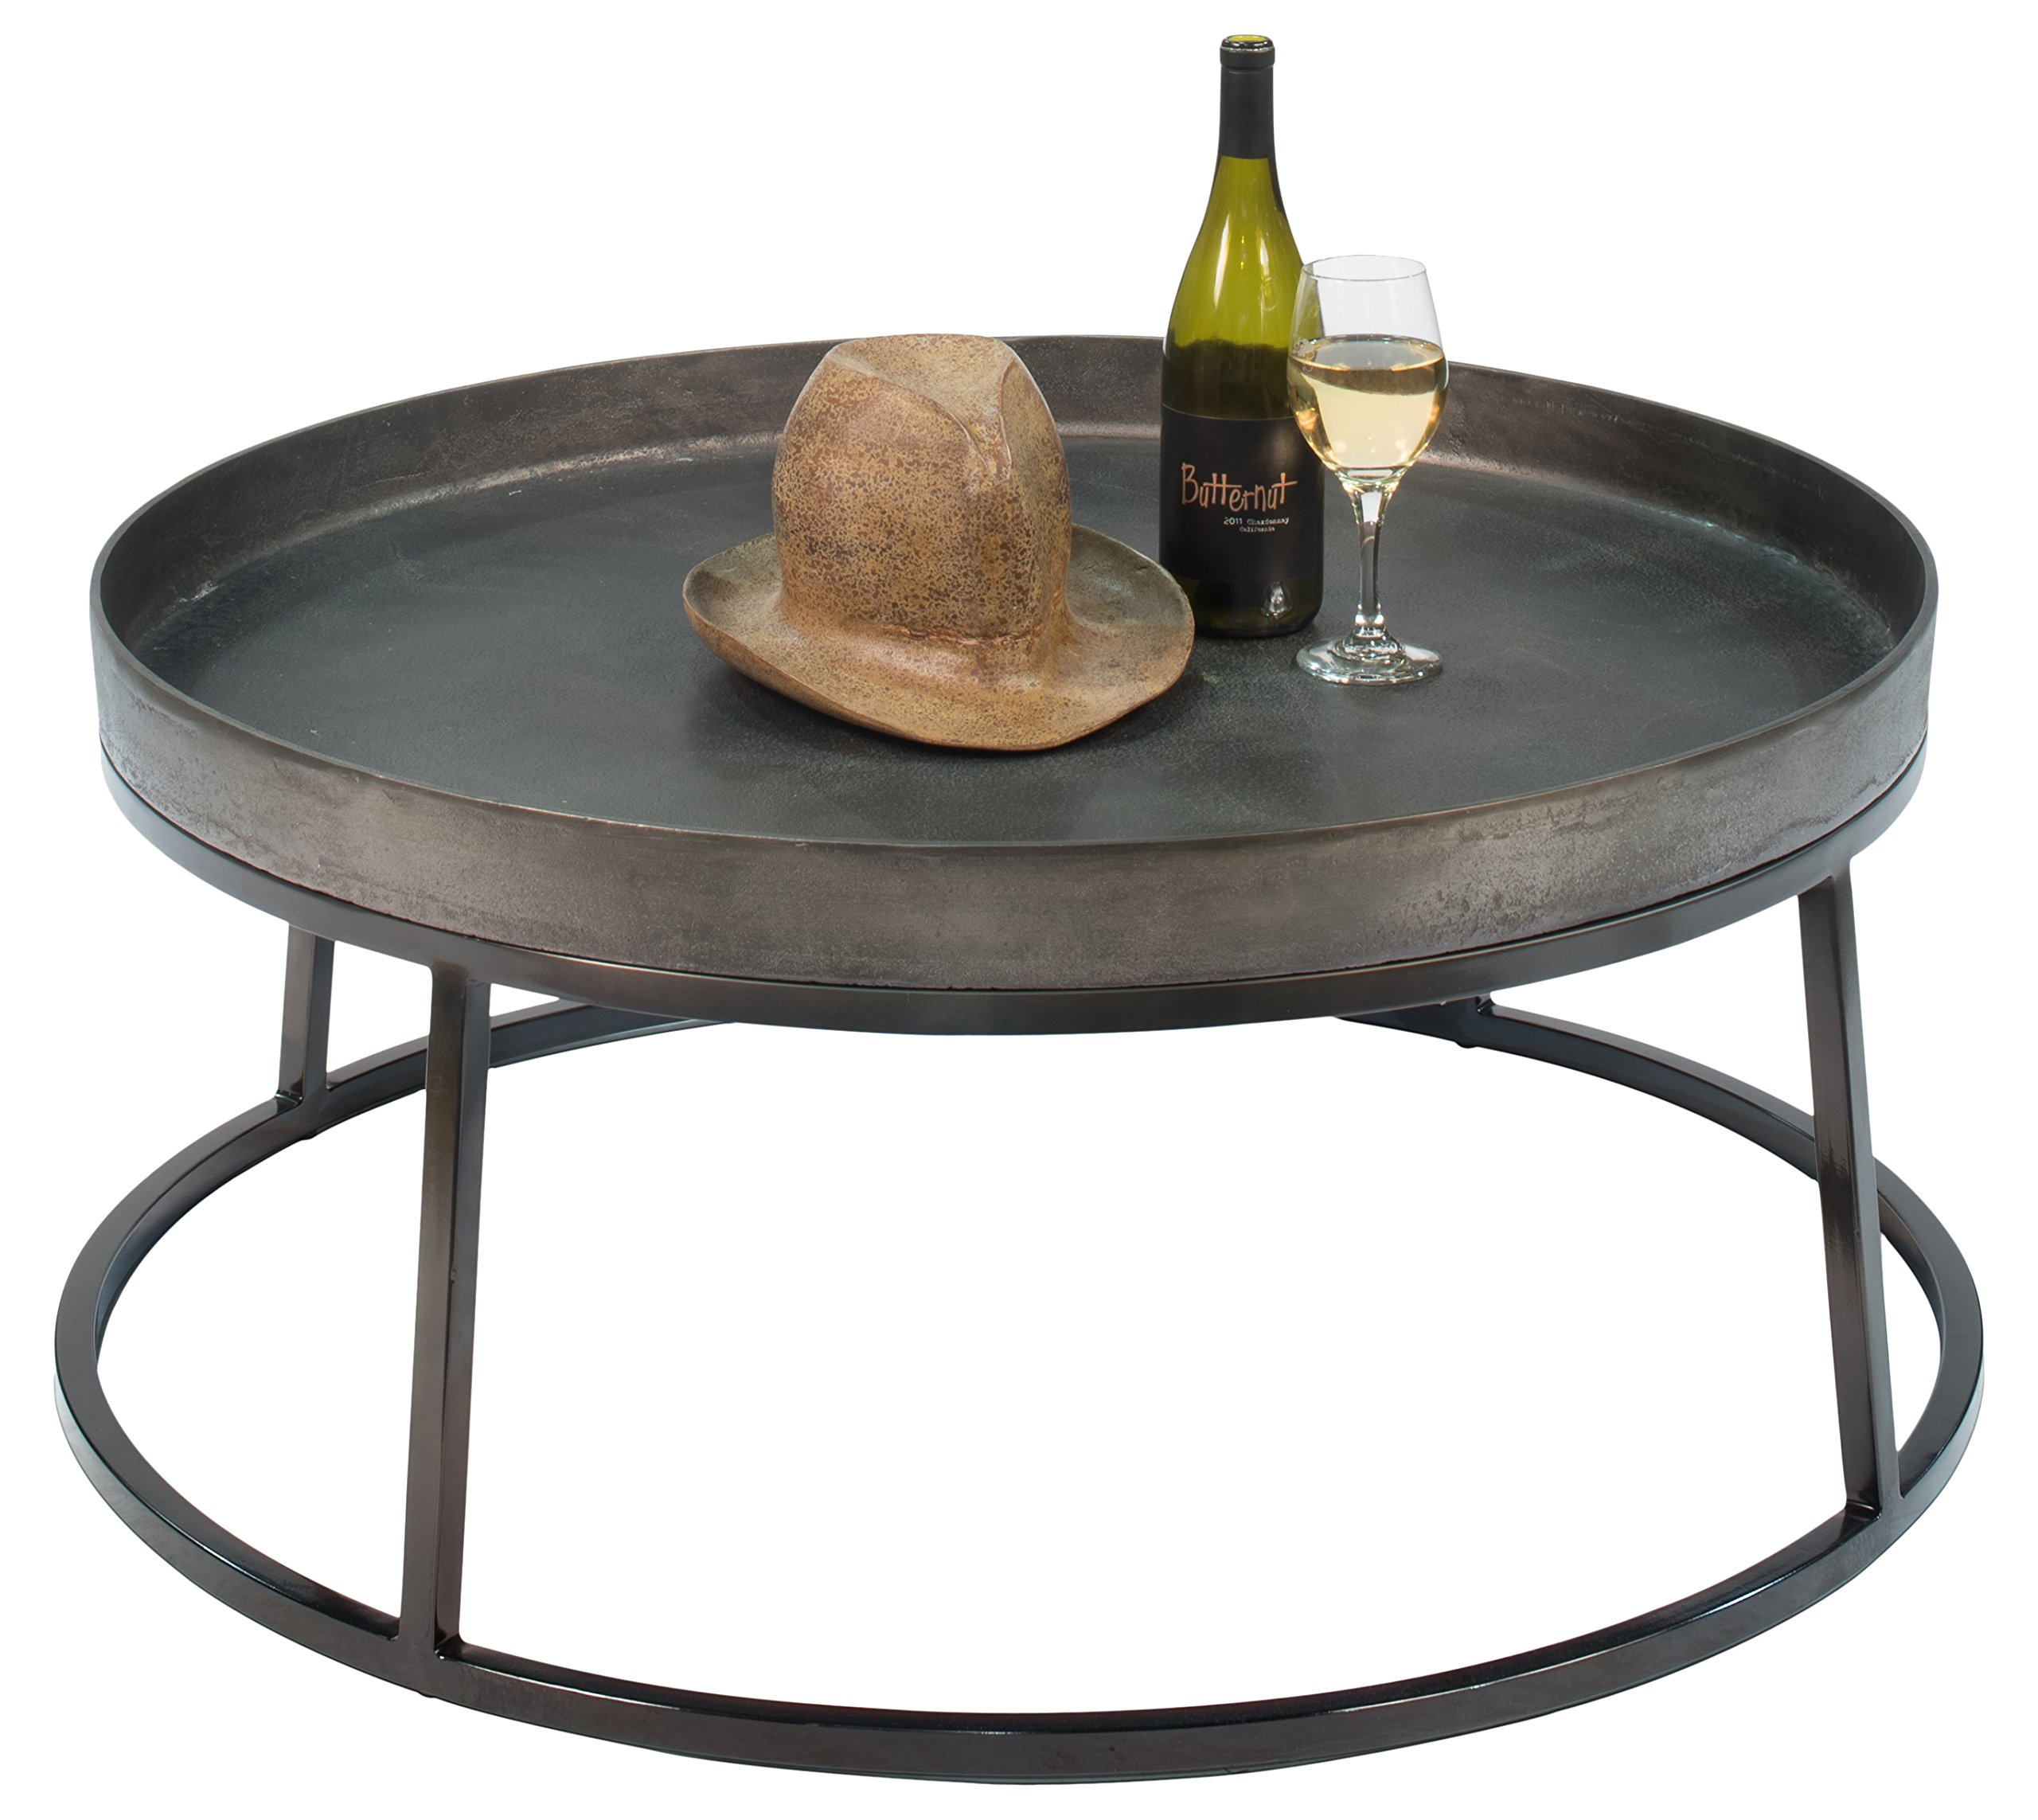 """Sarreid 30662 Games of Marble Coffee Table - Made In China. Black; Manufactures All Furniture Products Aluminum ; Steel Coffee ; Tables ; Furniture 35"""" Depth x 16"""" Height - living-room-furniture, living-room, coffee-tables - 81%2B0LymijtL -"""